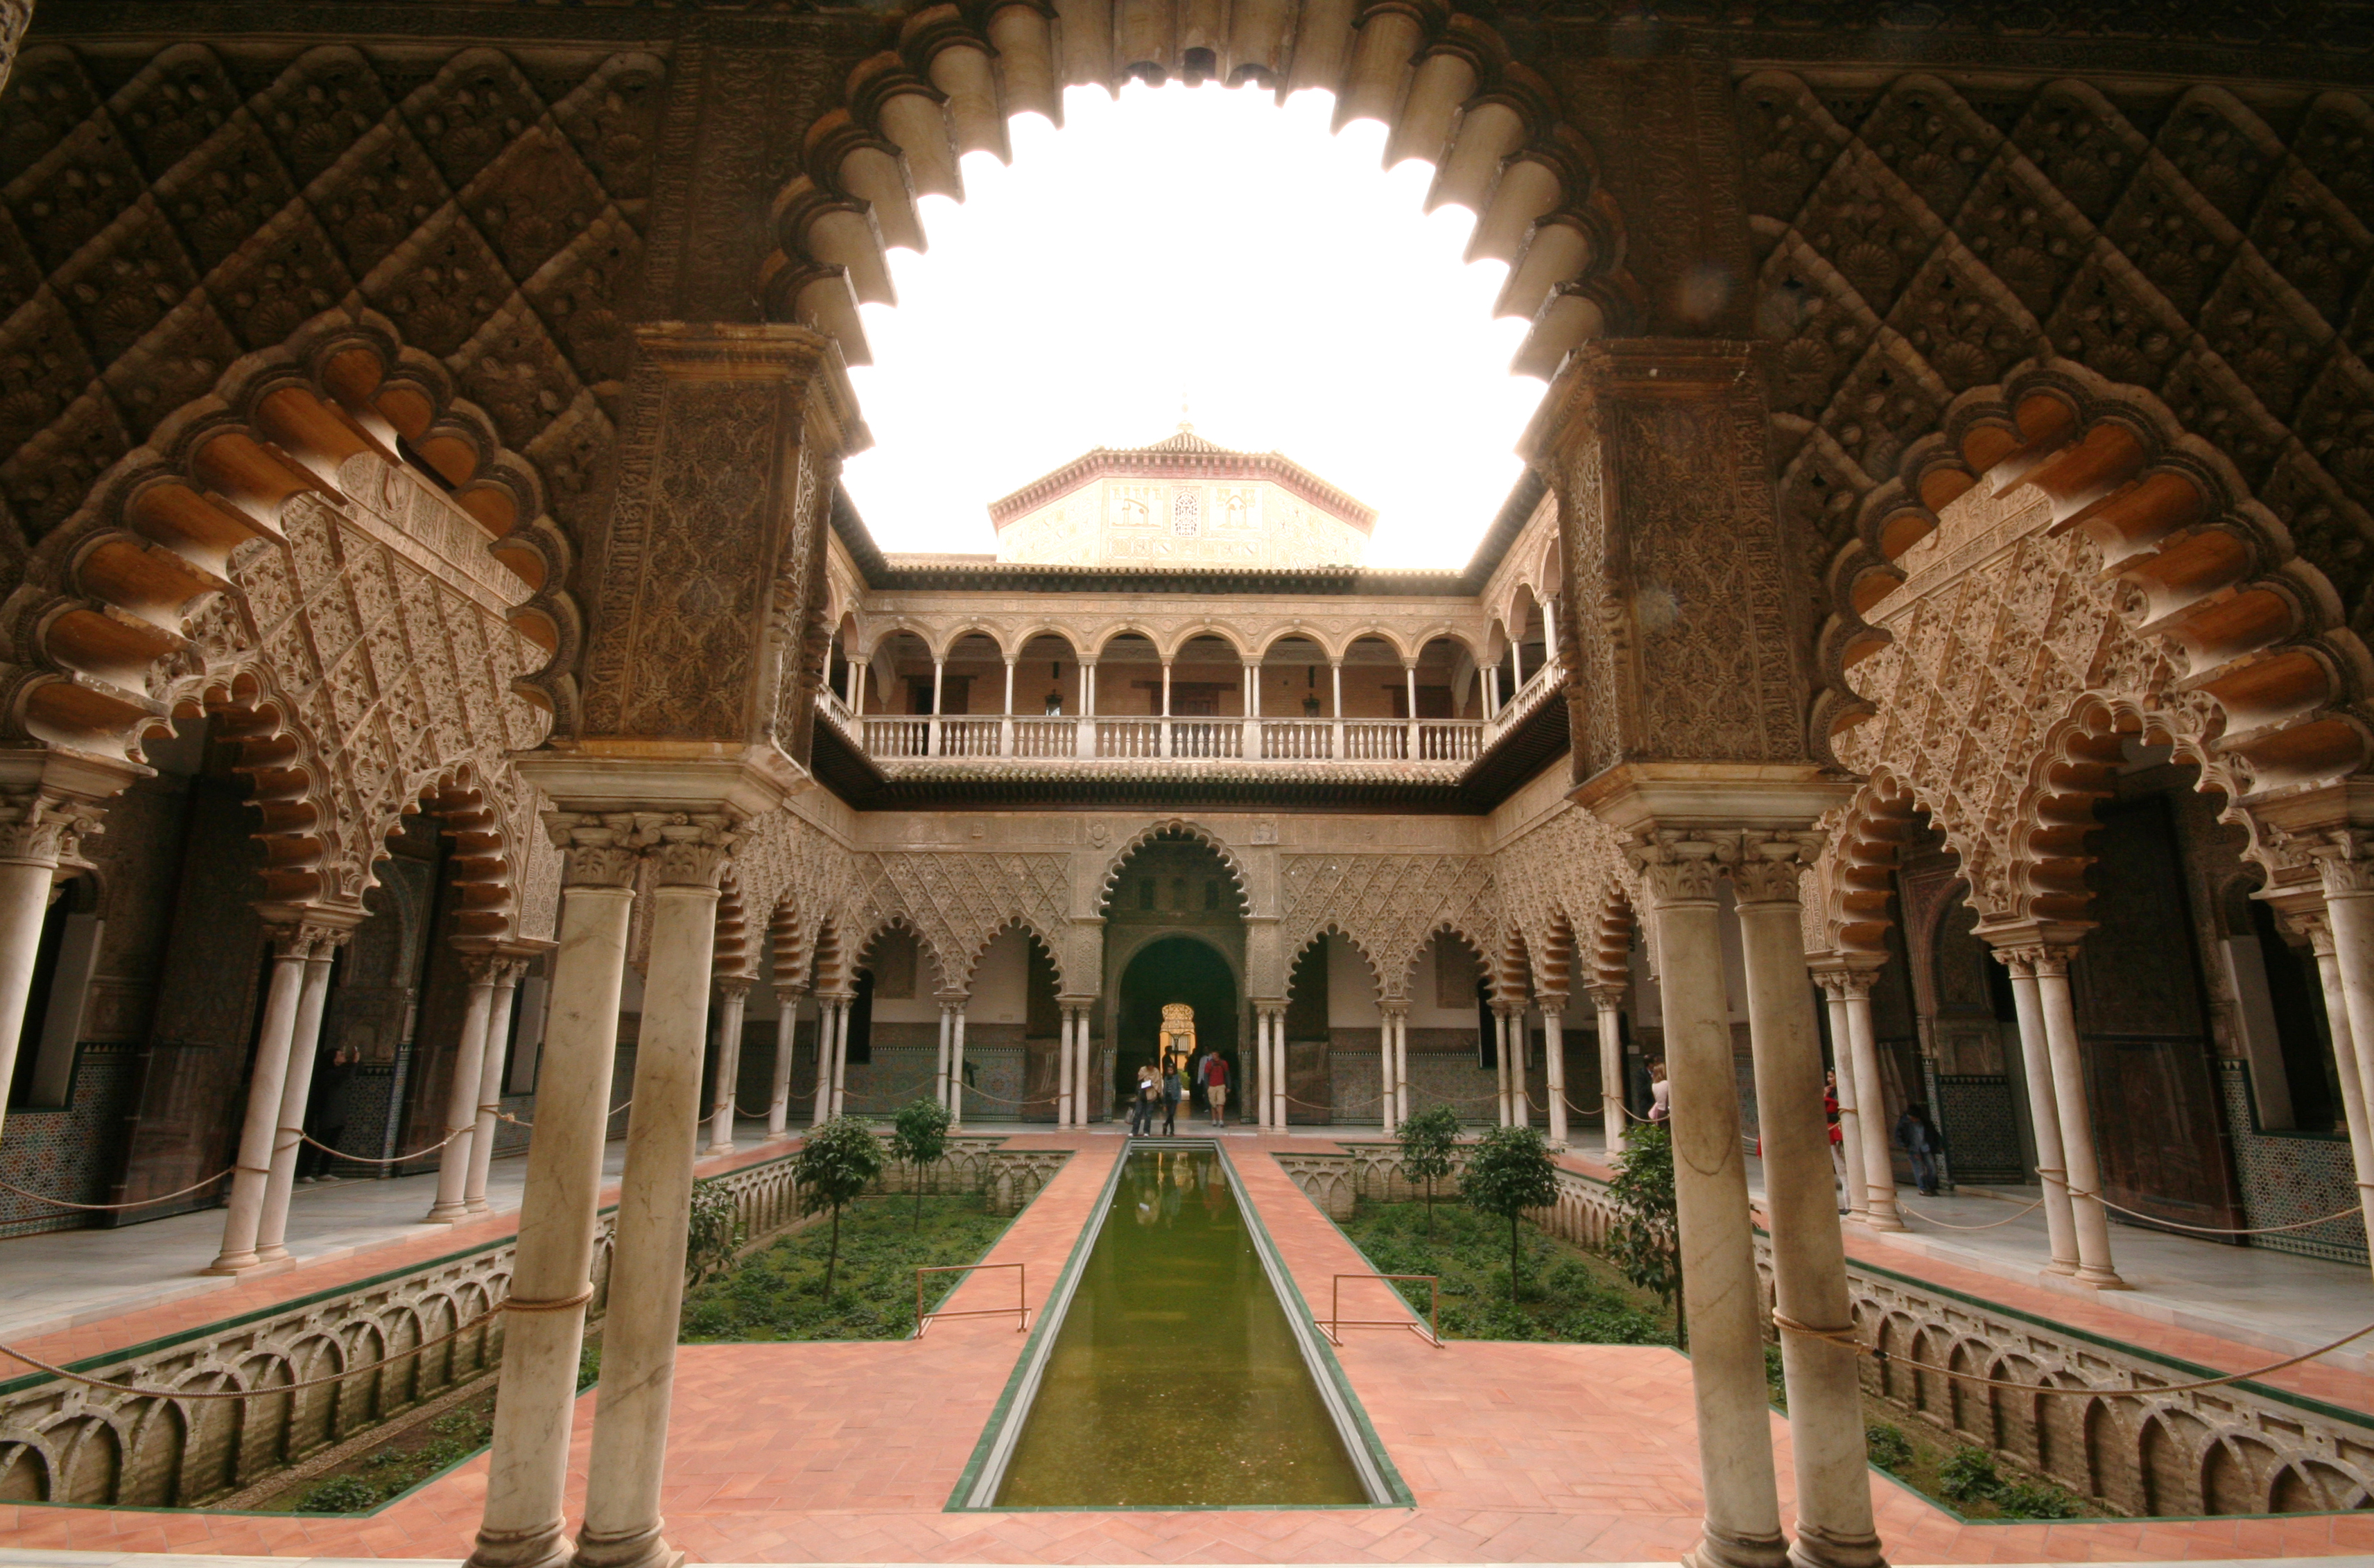 File:Patio de las doncellas.jpg - Wikimedia Commons